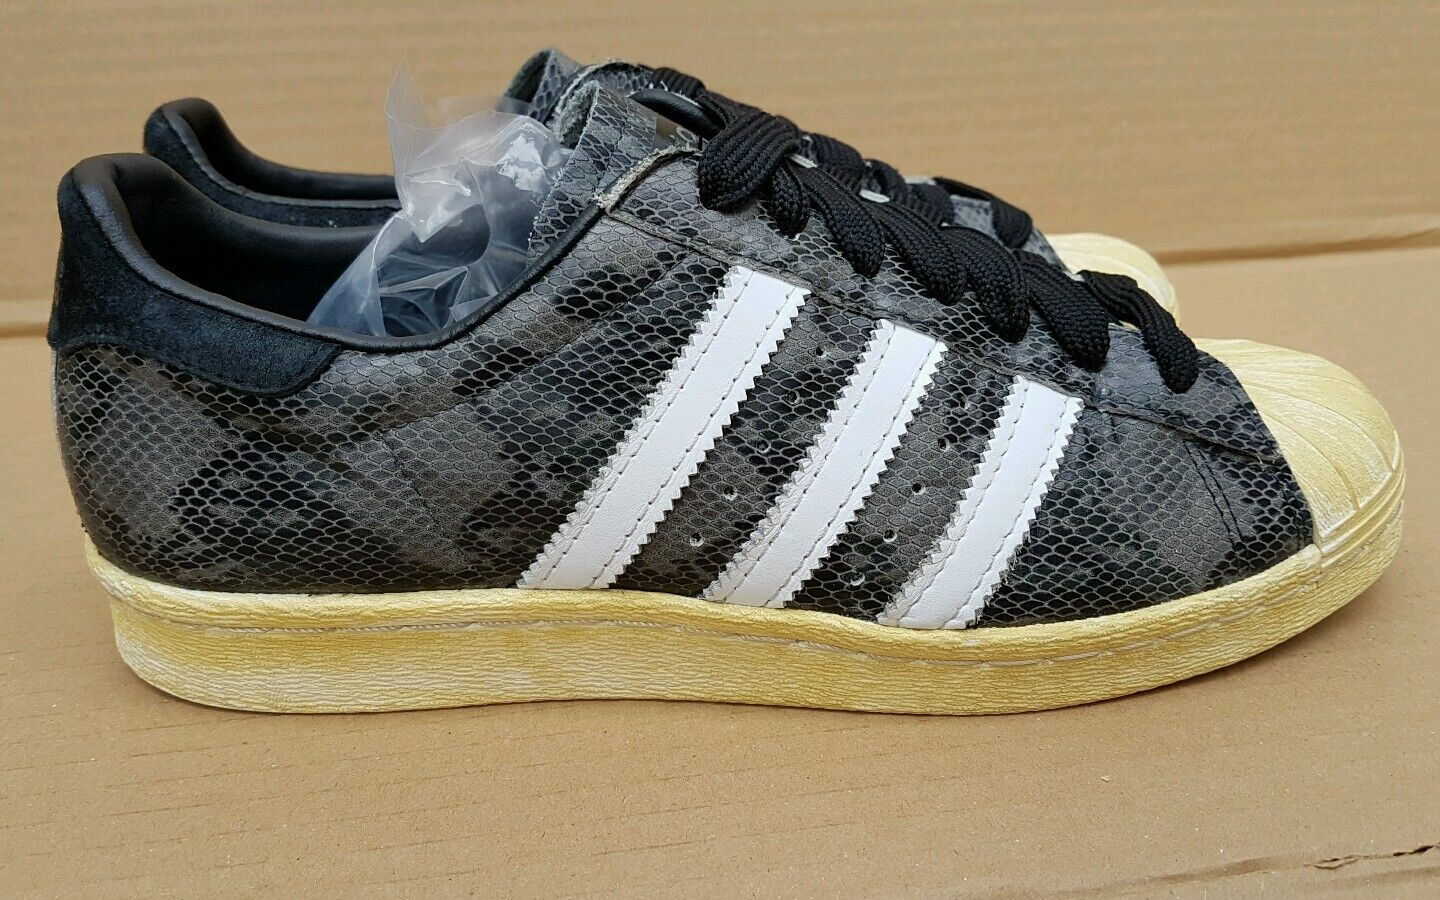 RARE ADIDAS SUPERSTAR 80's LIMITED EDITION TRAINERS Taille 6 6 6 UK noir SNAKE SKIN a96a29